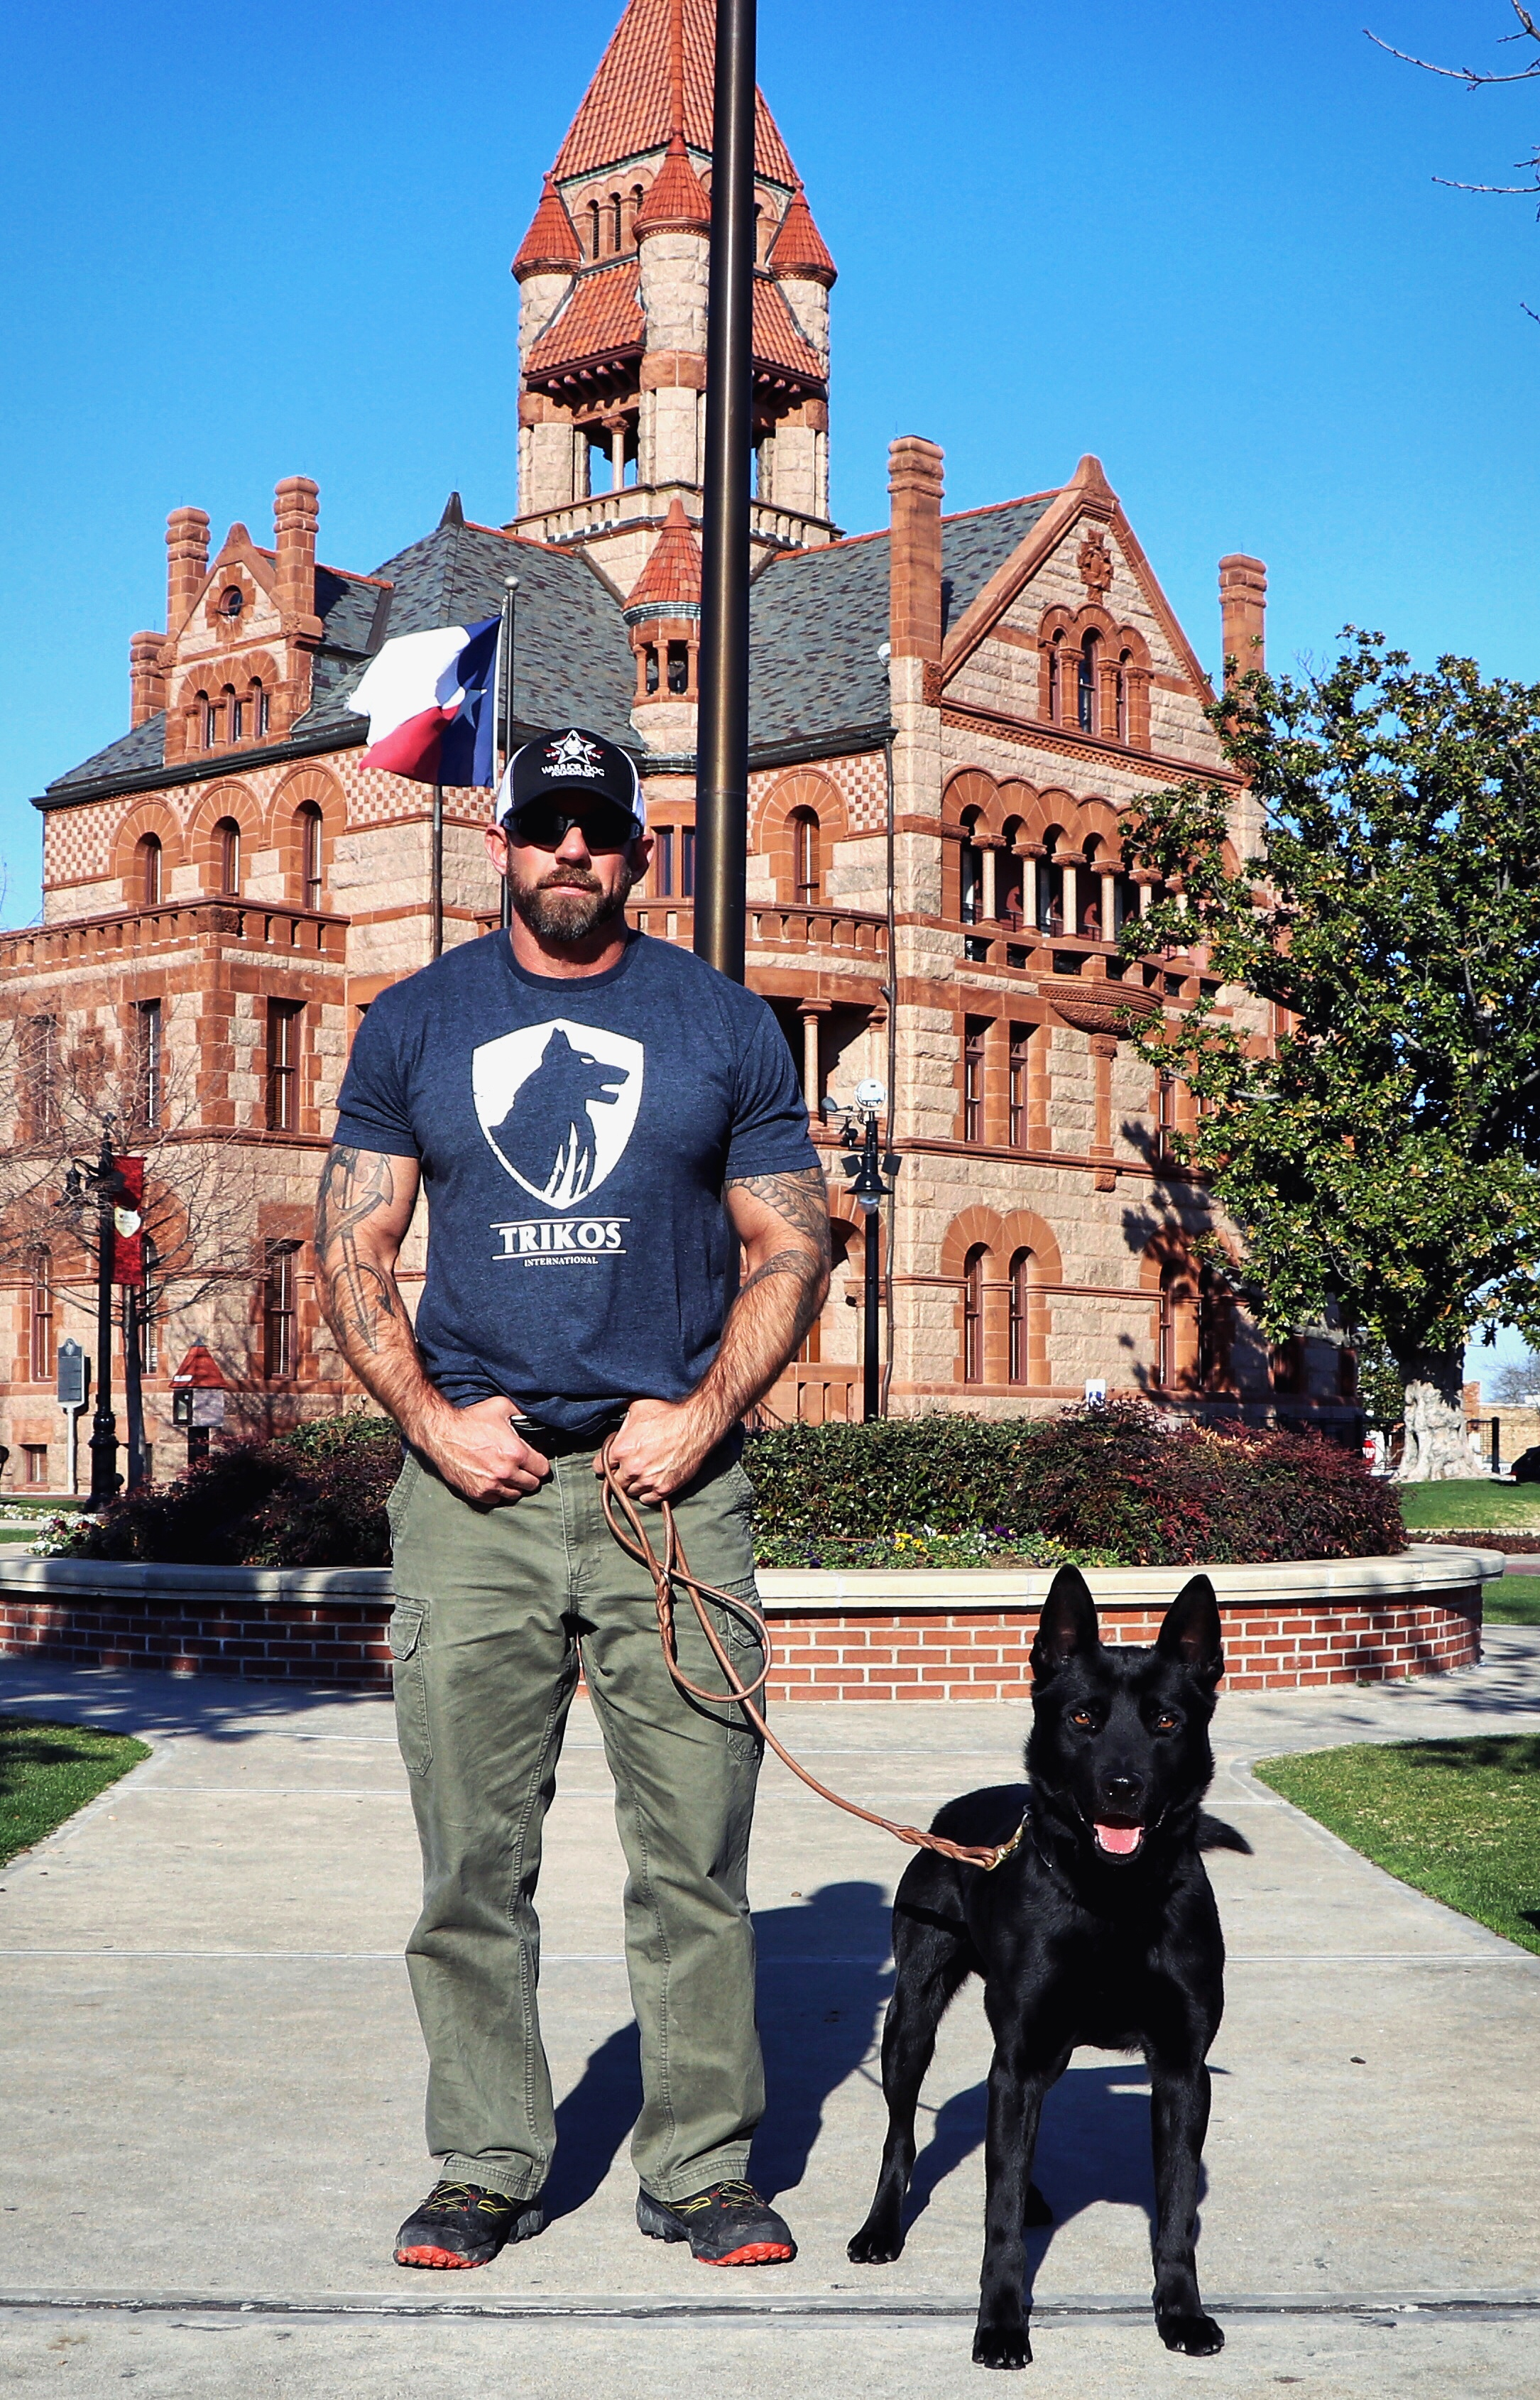 mike ritland with k9 dog in front of large house